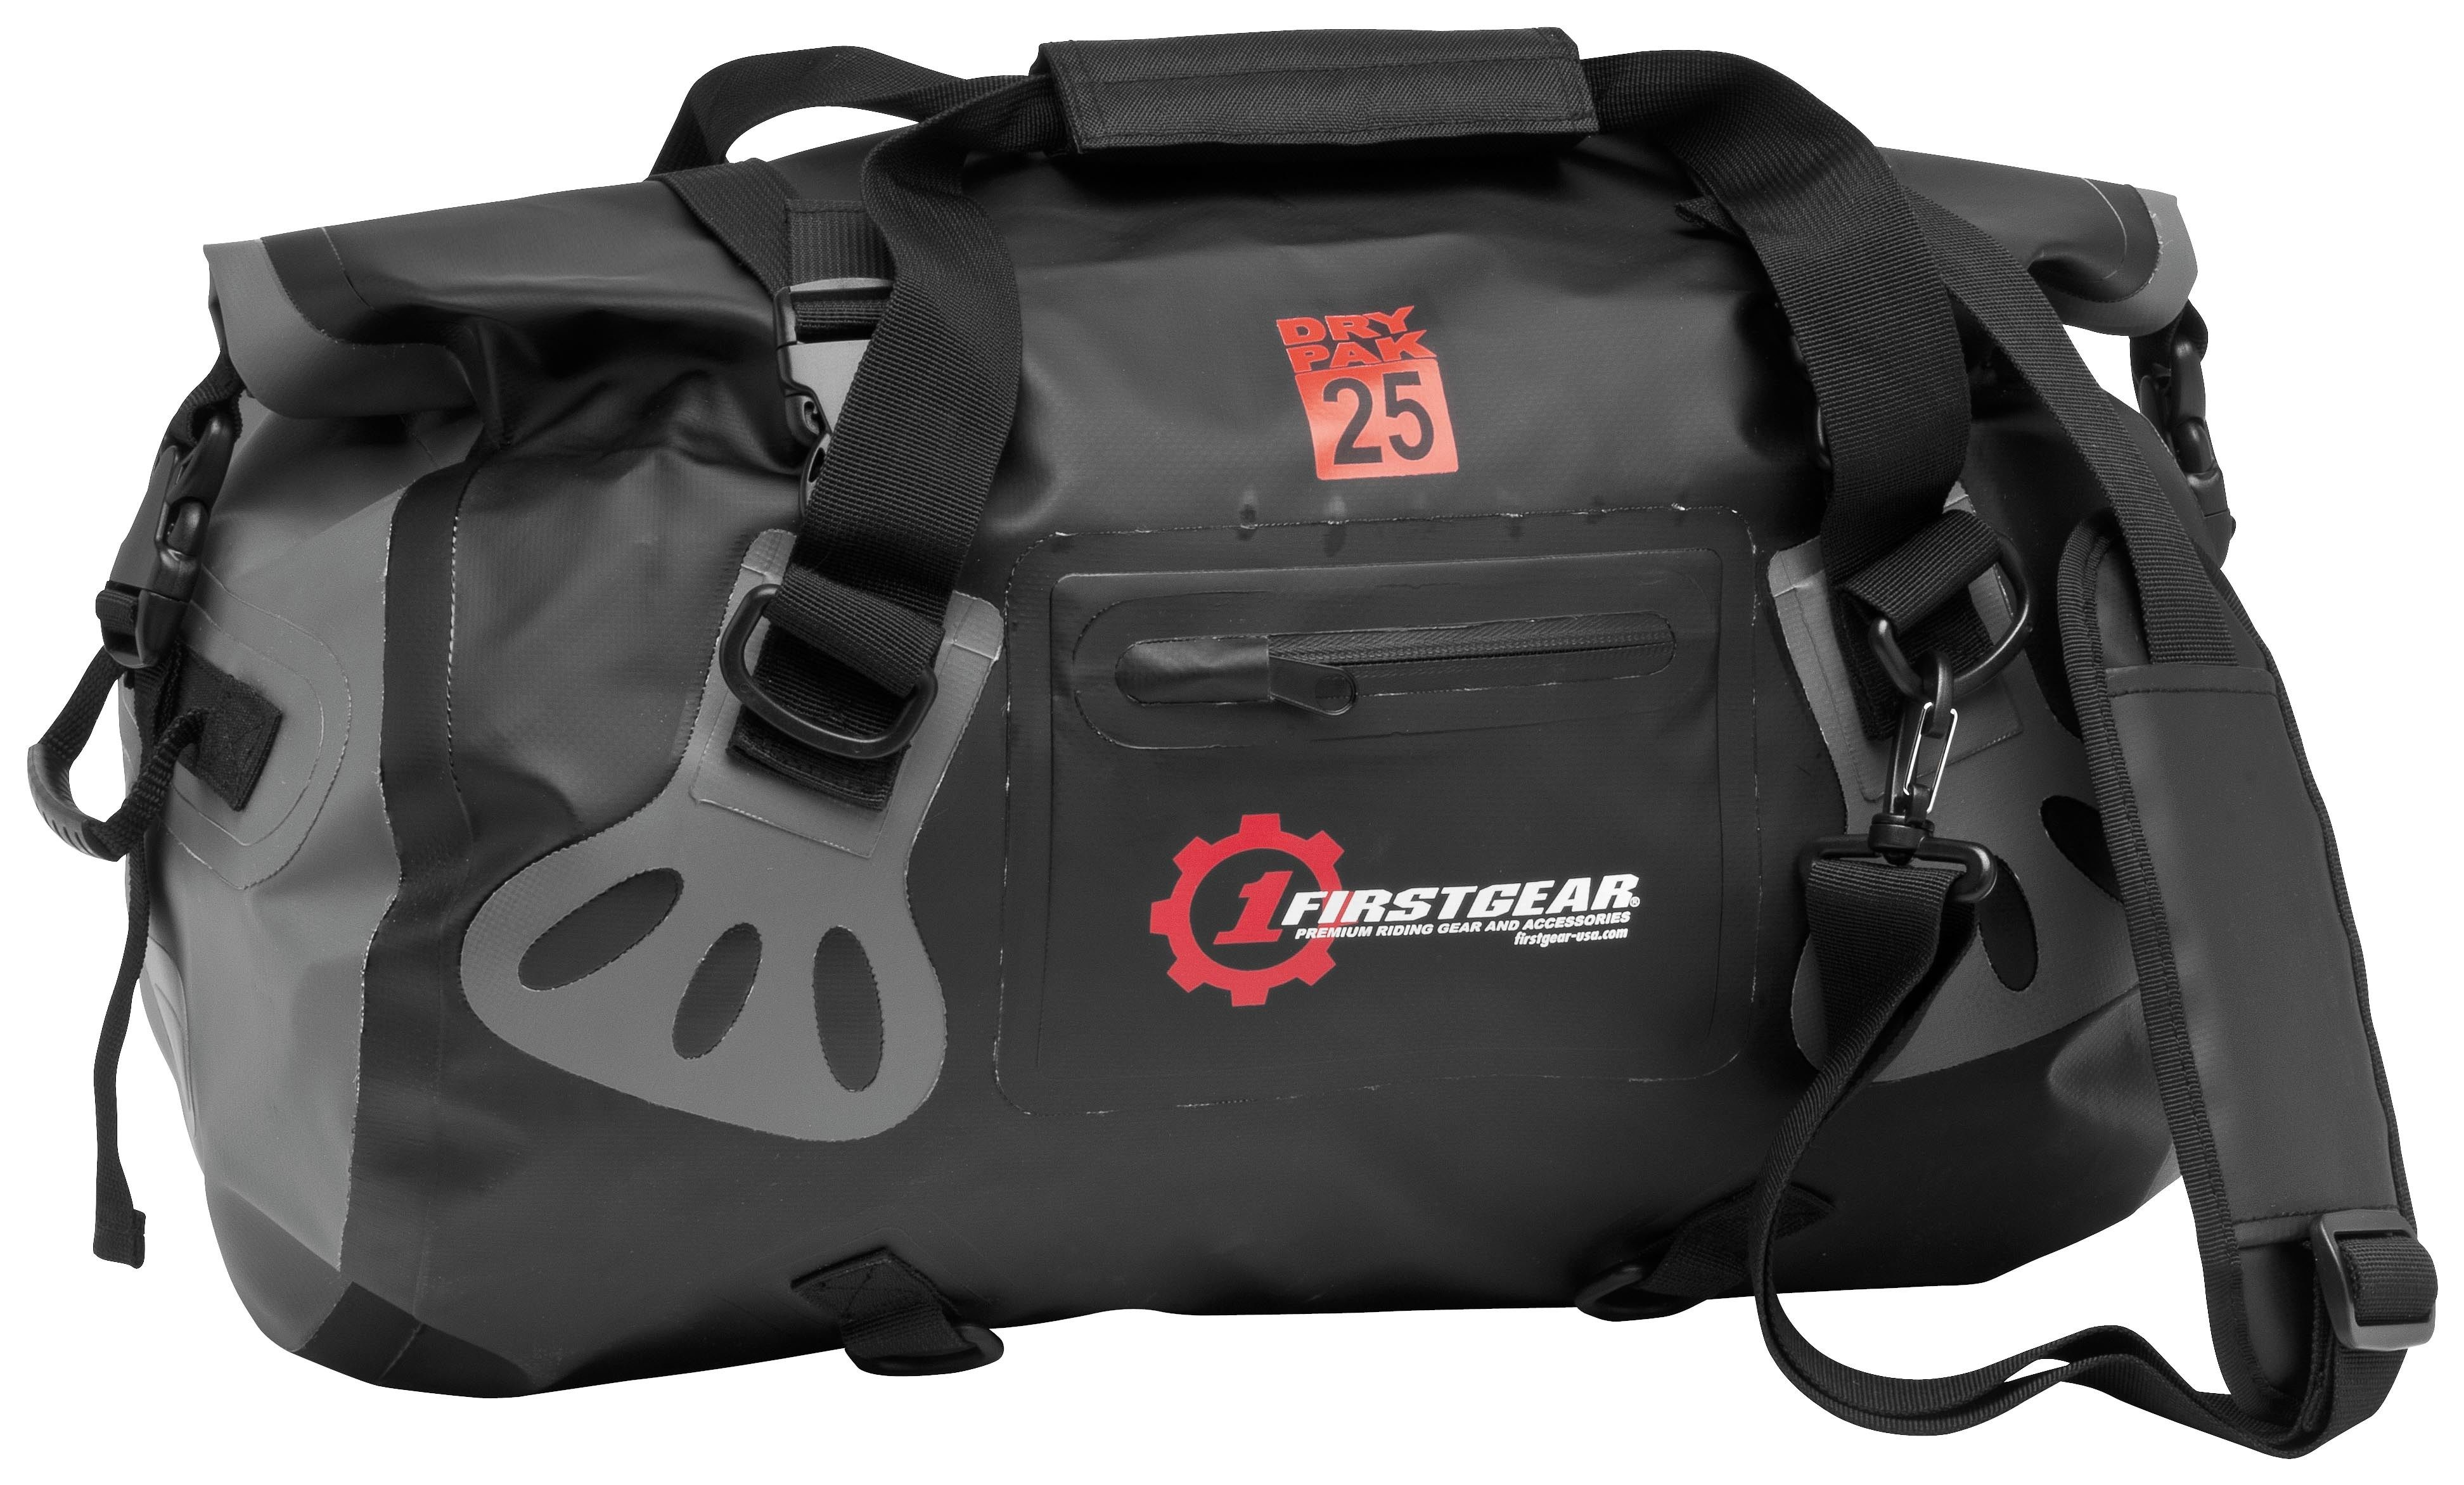 Firstgear Tor Duffle Bag